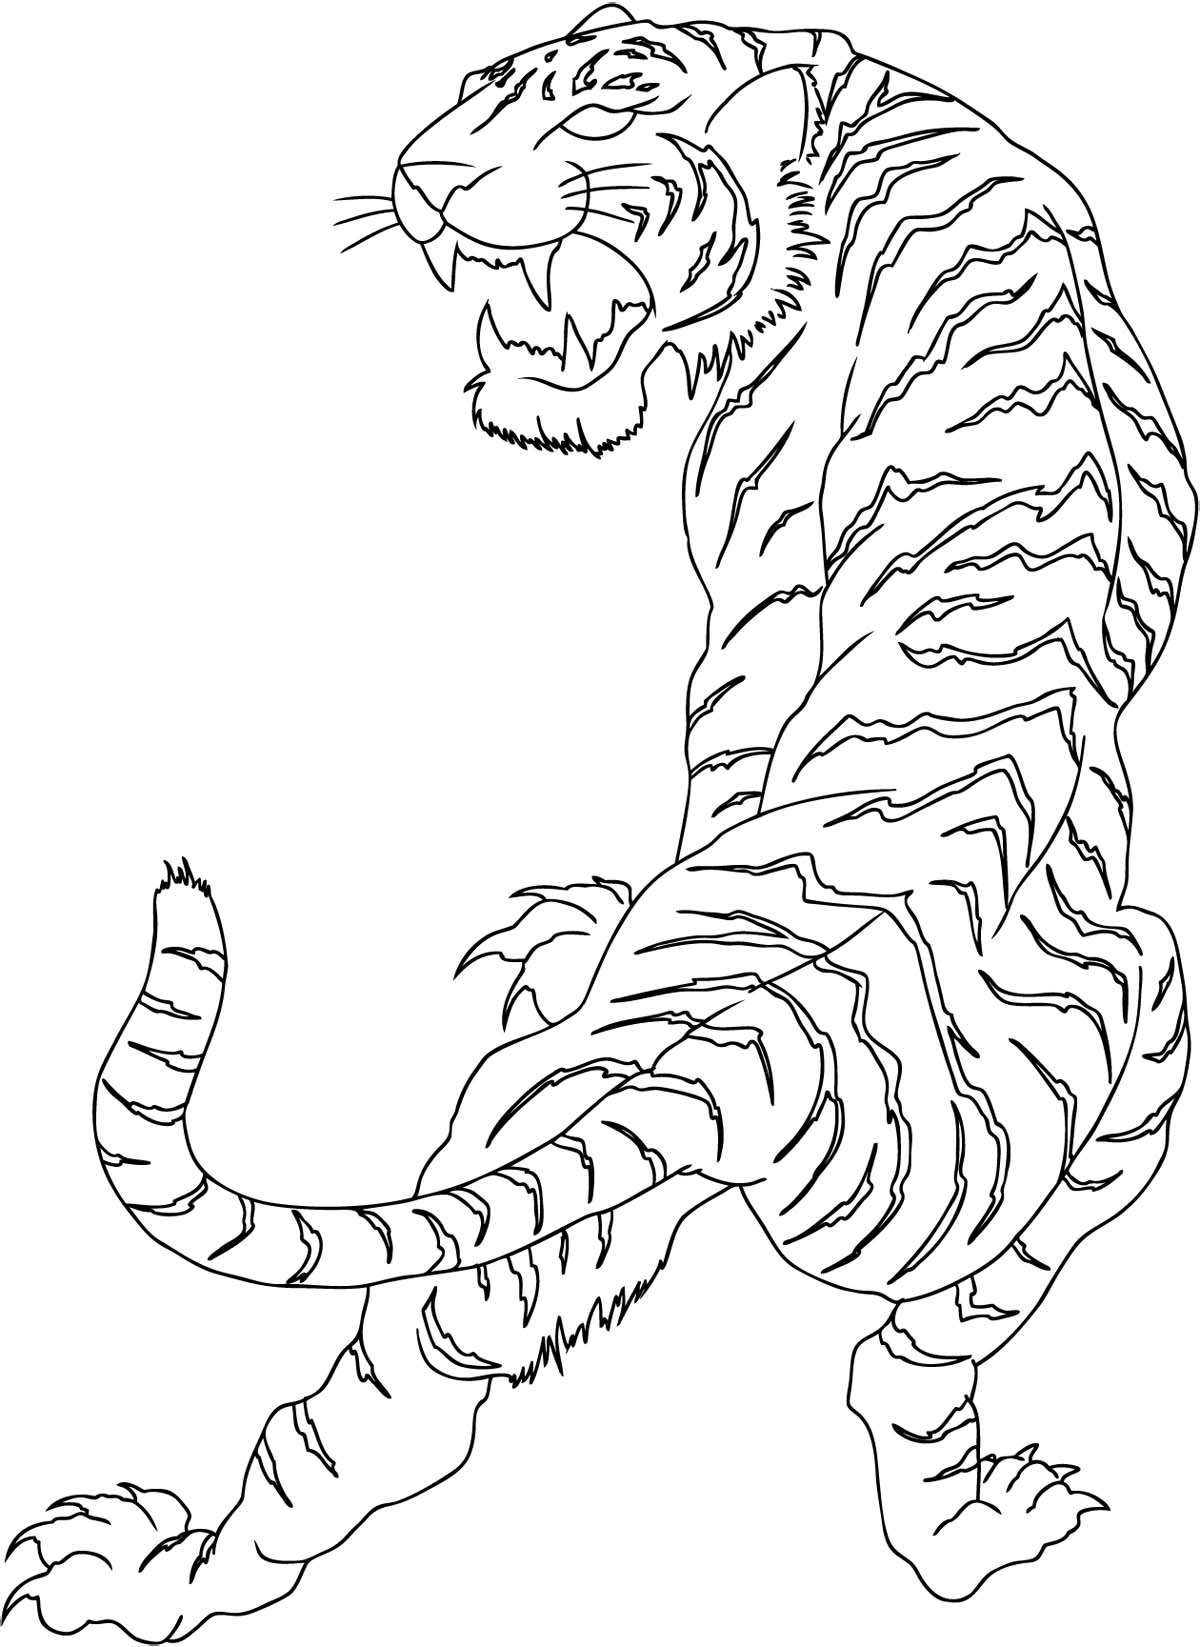 Line Drawing Tiger : Chinese tiger line drawing pixshark images